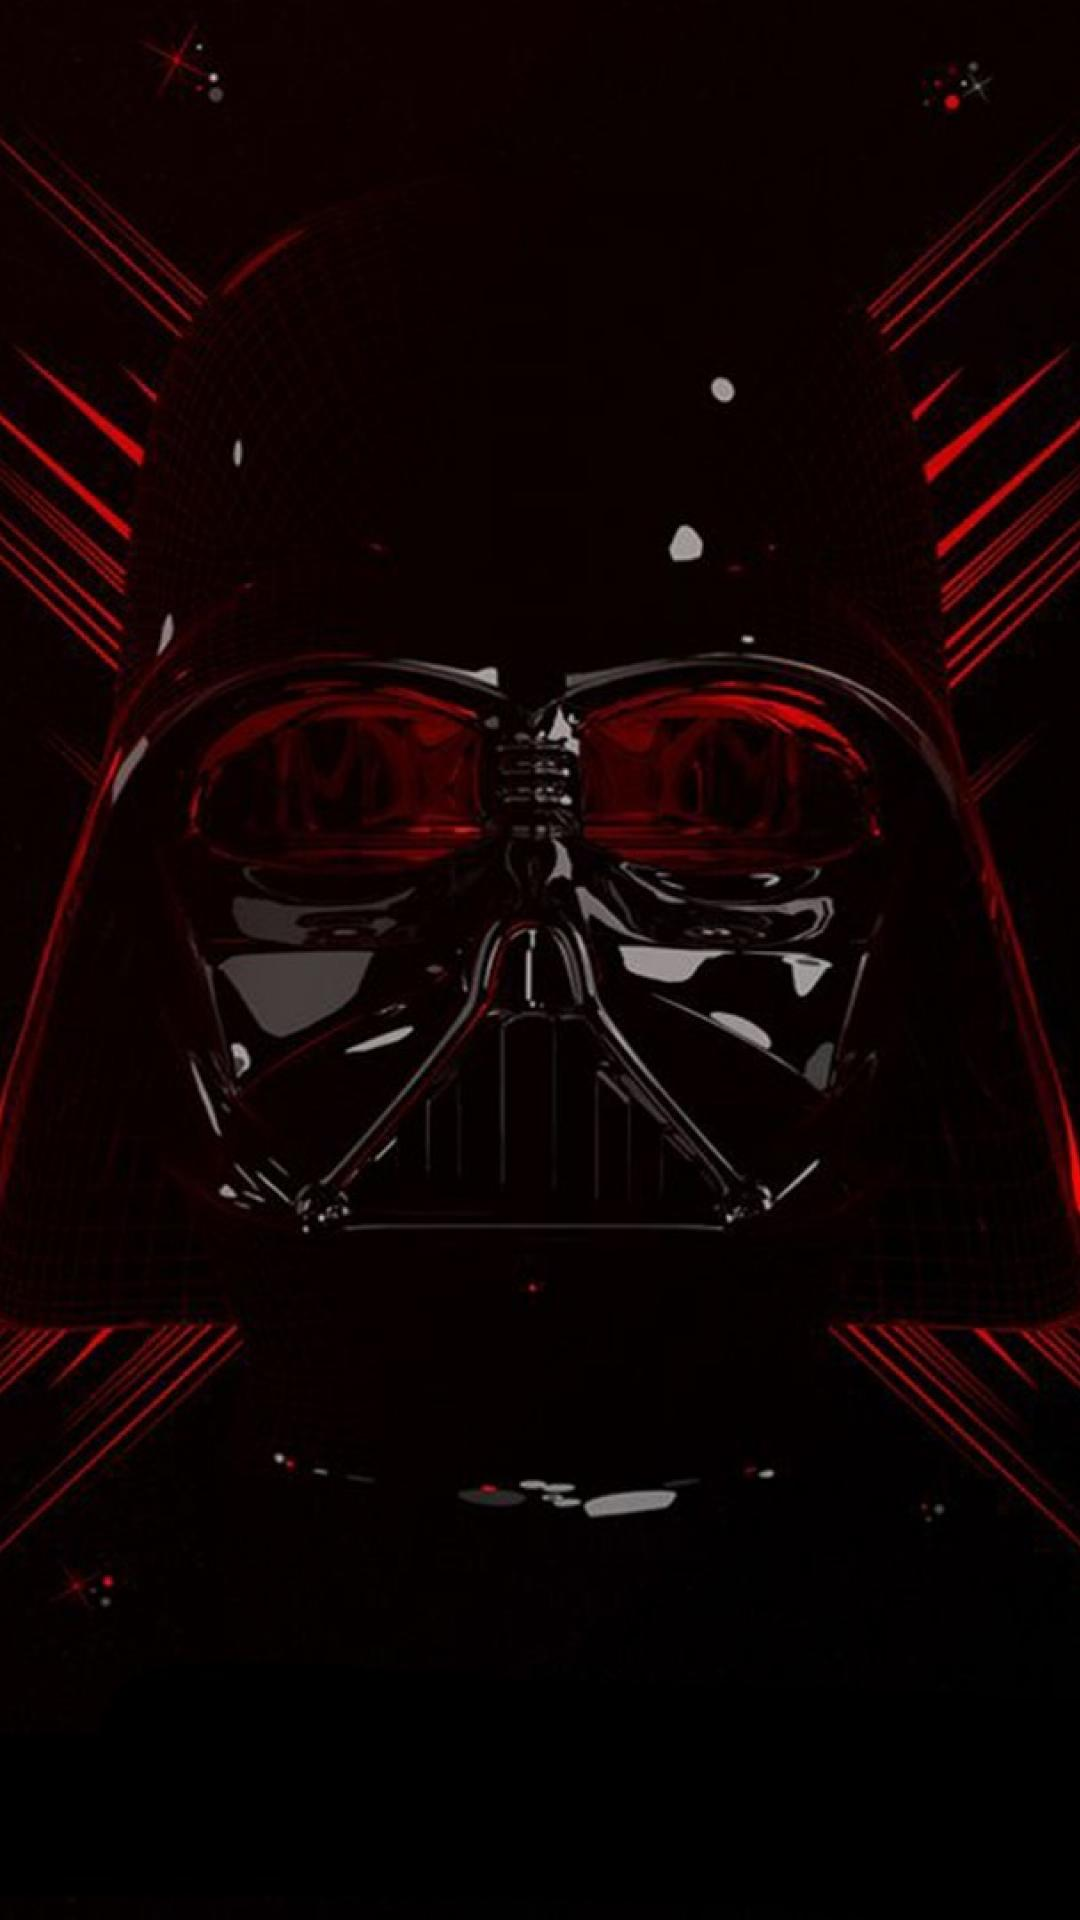 Star Wars Dark Side Poster Free Wallpaper and Backgrounds